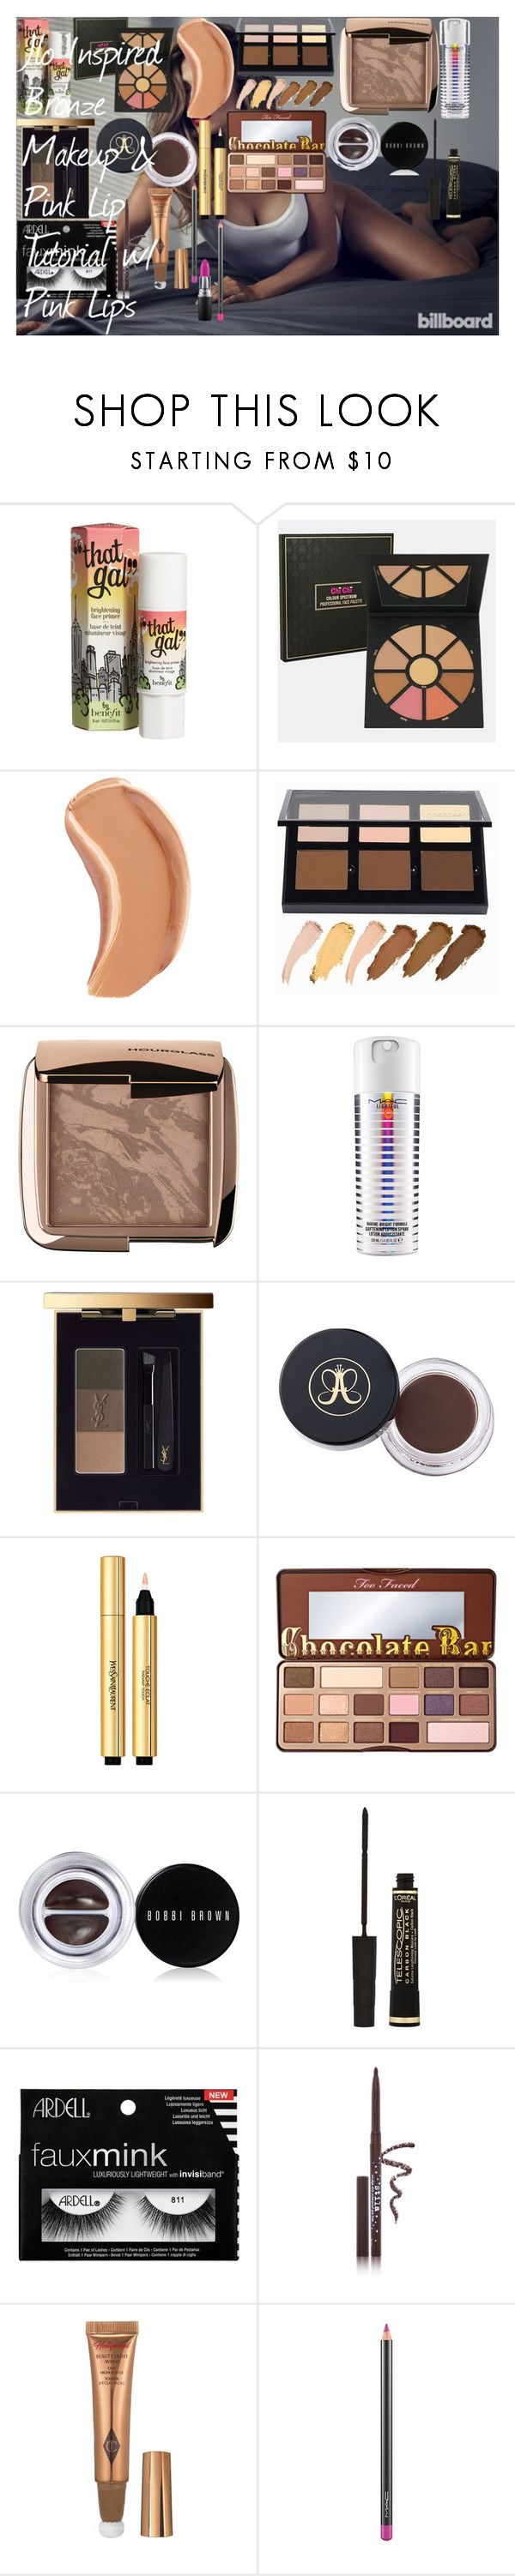 """Jlo Inspired Bronze Makeup & Pink Lip Tutorial w/ Pink Lips ♡"" by oroartyellie on Polyvore featuring beauty, JLo by Jennifer Lopez, Benefit, NARS Cosmetics, Anastasia Beverly Hills, Hourglass Cosmetics, MAC Cosmetics, Yves Saint Laurent, Too Faced Cosmetics and Bobbi Brown Cosmetics"